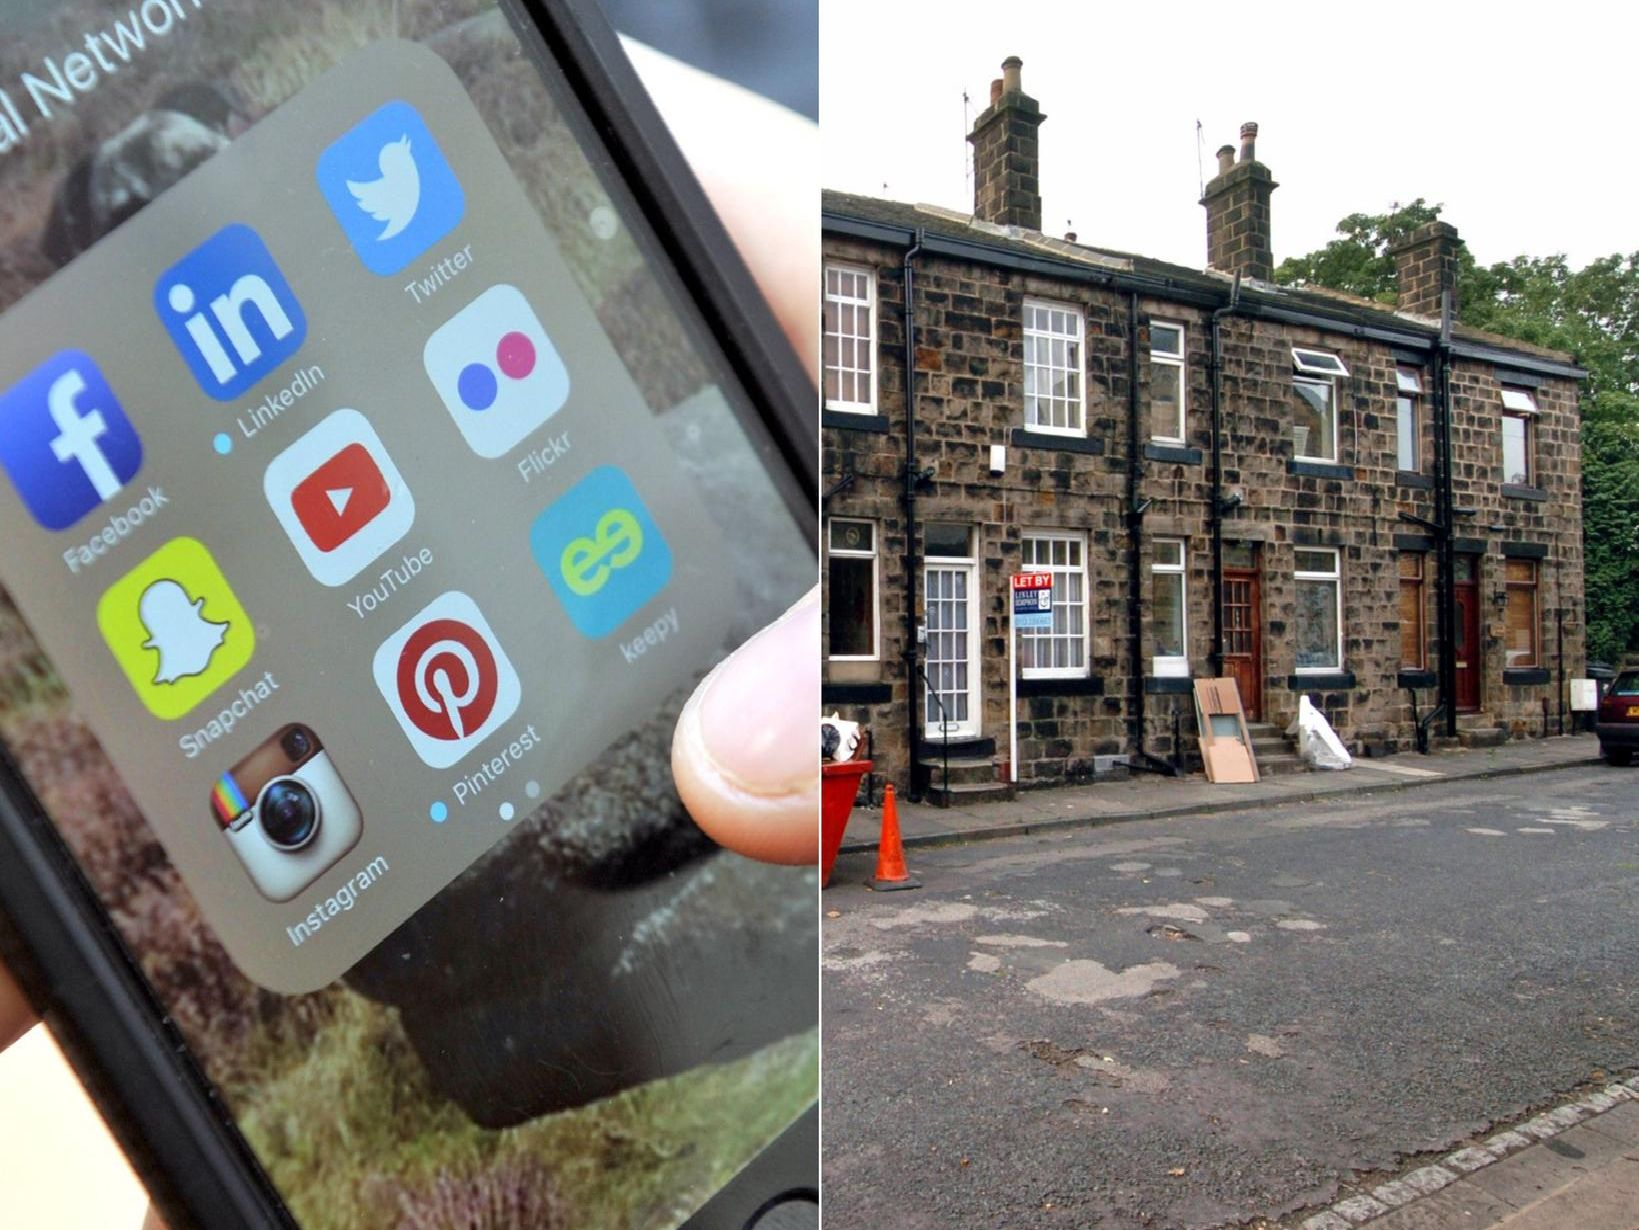 The 14 areas of Leeds with the slowest WiFi revealed